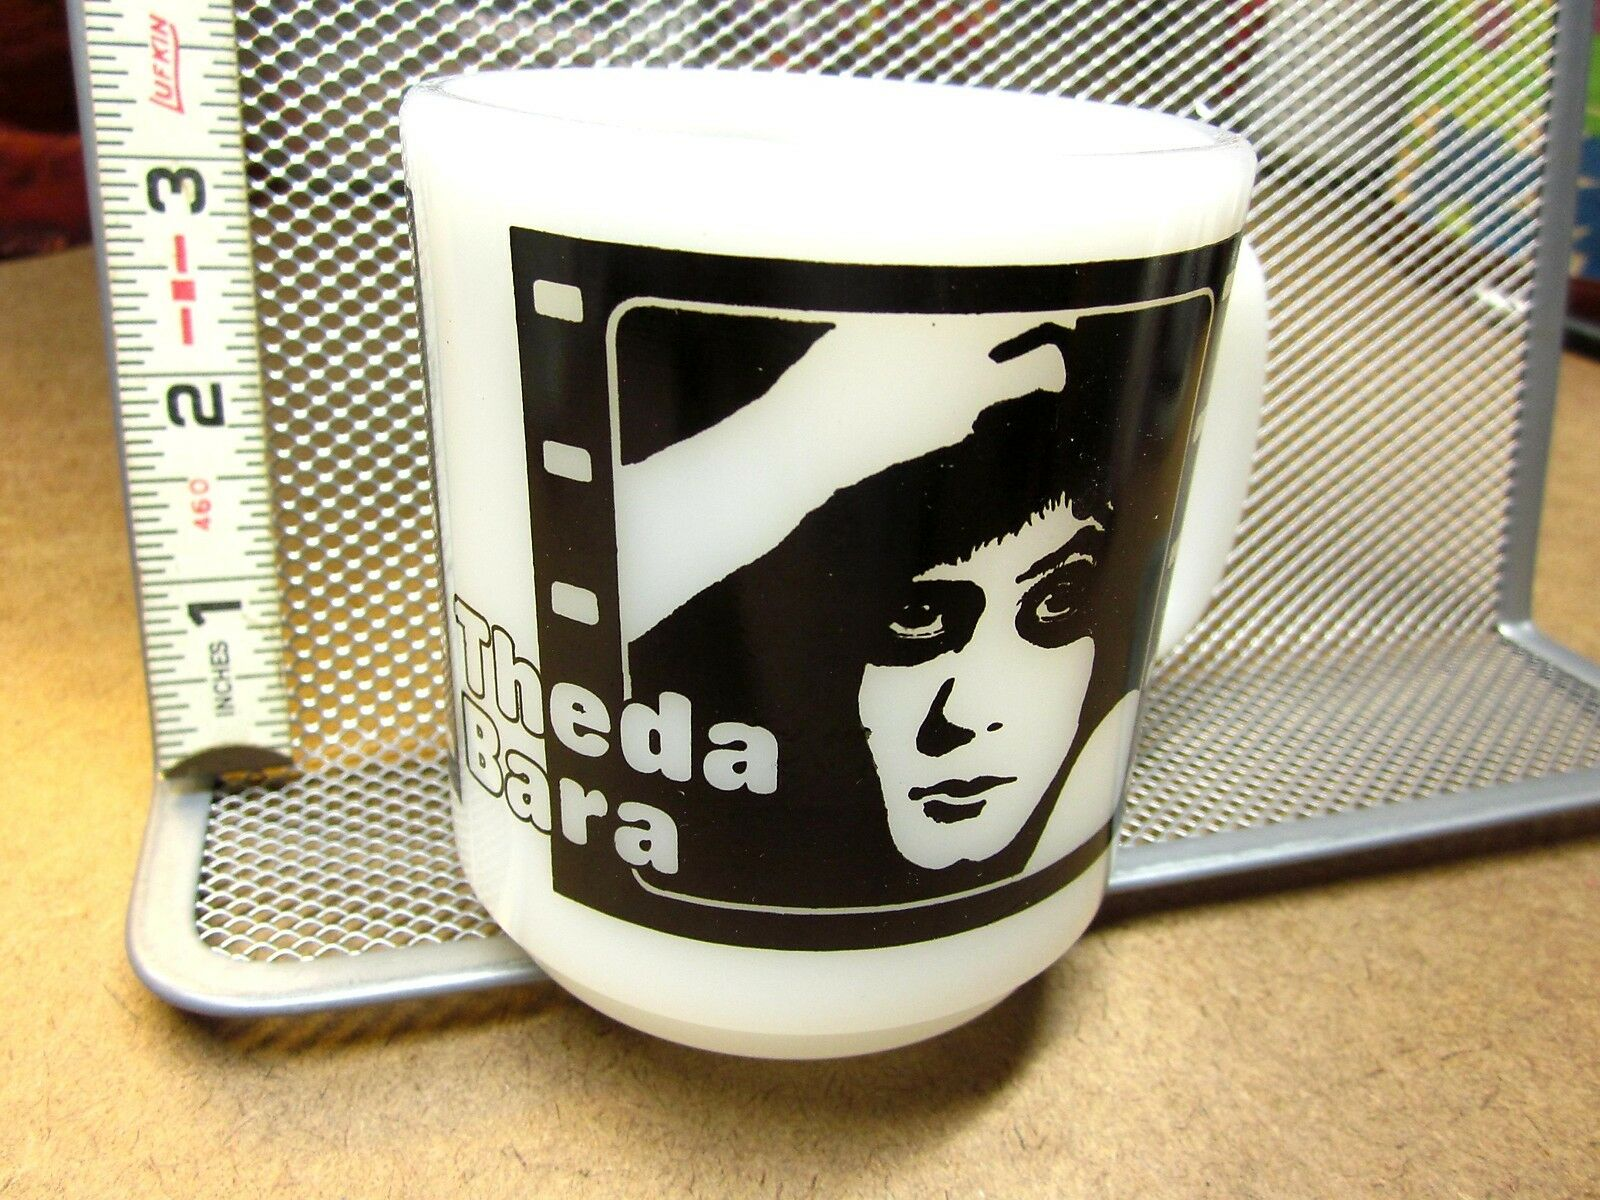 THEDA BARA blanc glass vtg mug PEARL blanc film-strip cup 1950s Hollywood